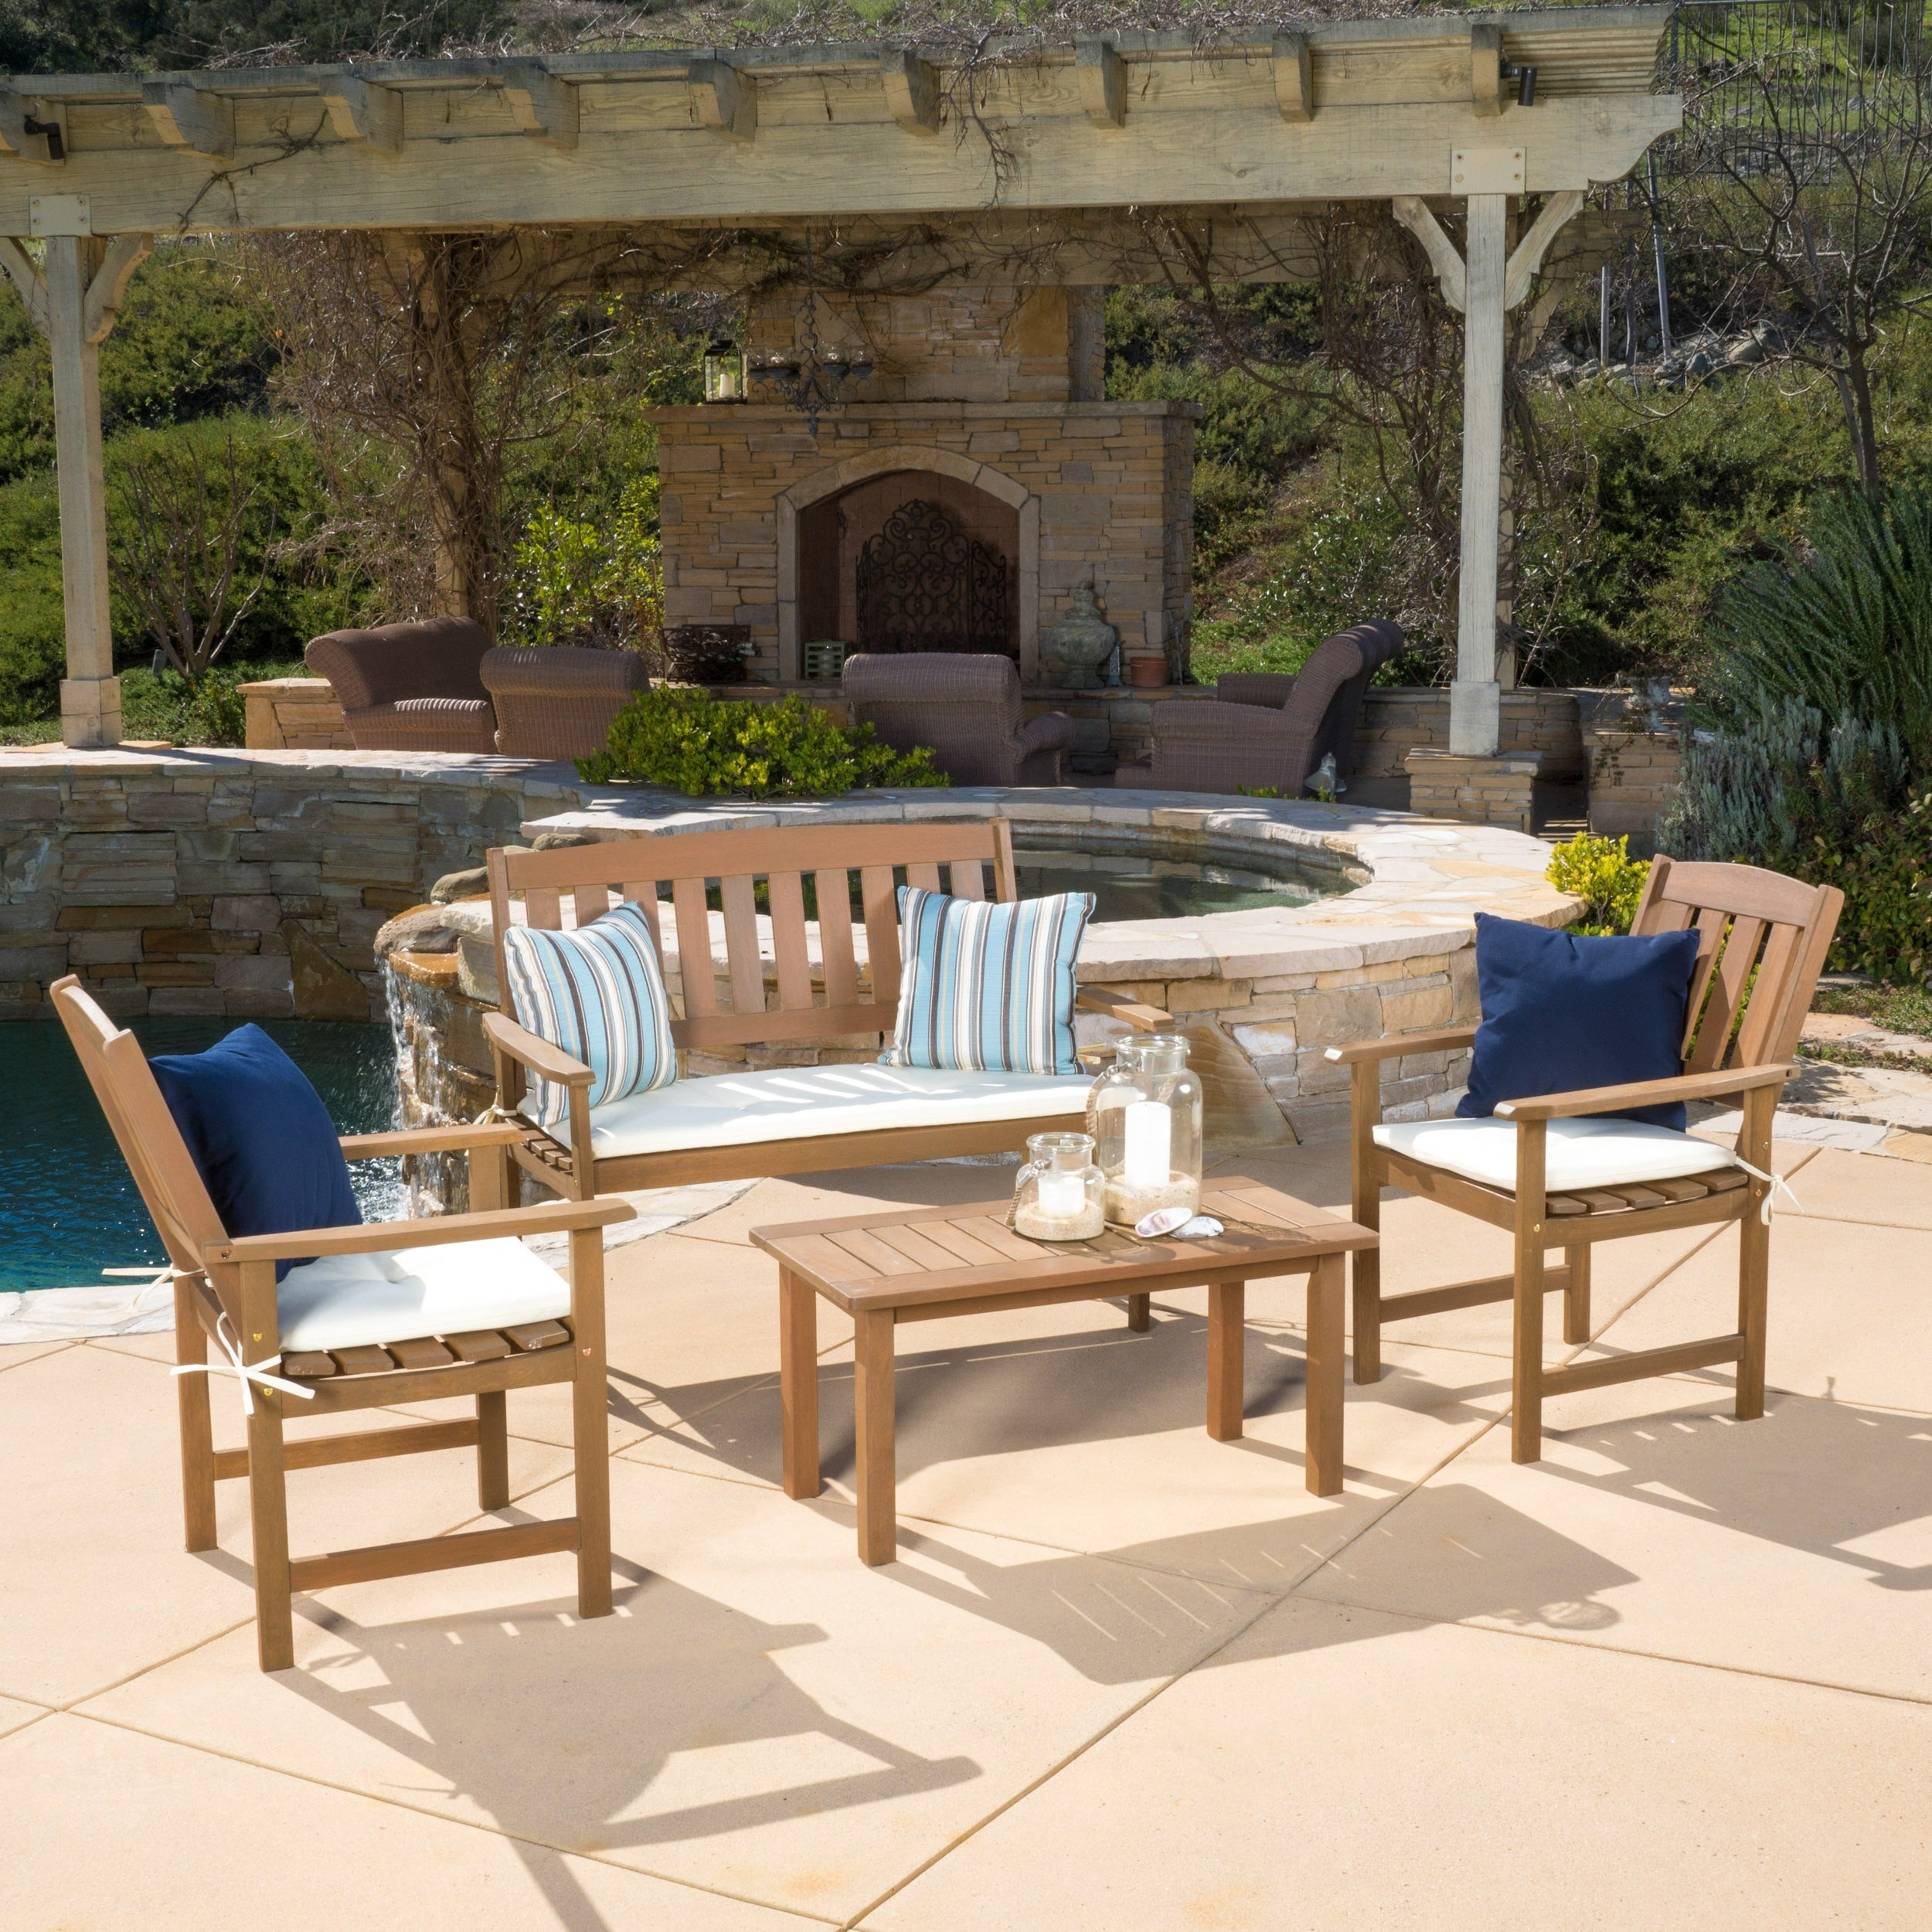 Outdoor Belize 4-piece Wood Chat Set with Cushions by Chr...